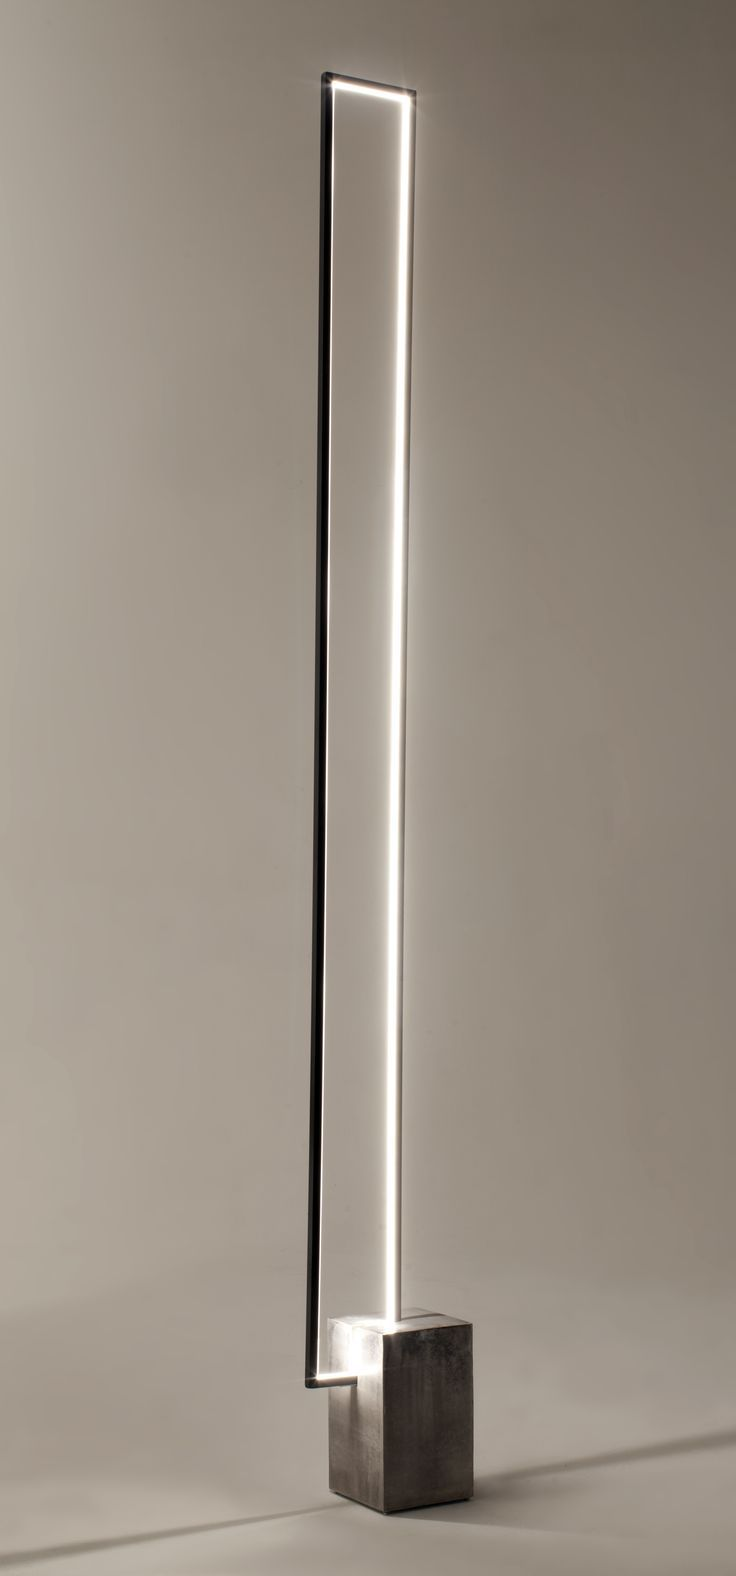 floor led lighting. the mire a floor lamp with clear led light strip inside rectangular metal frame led lighting